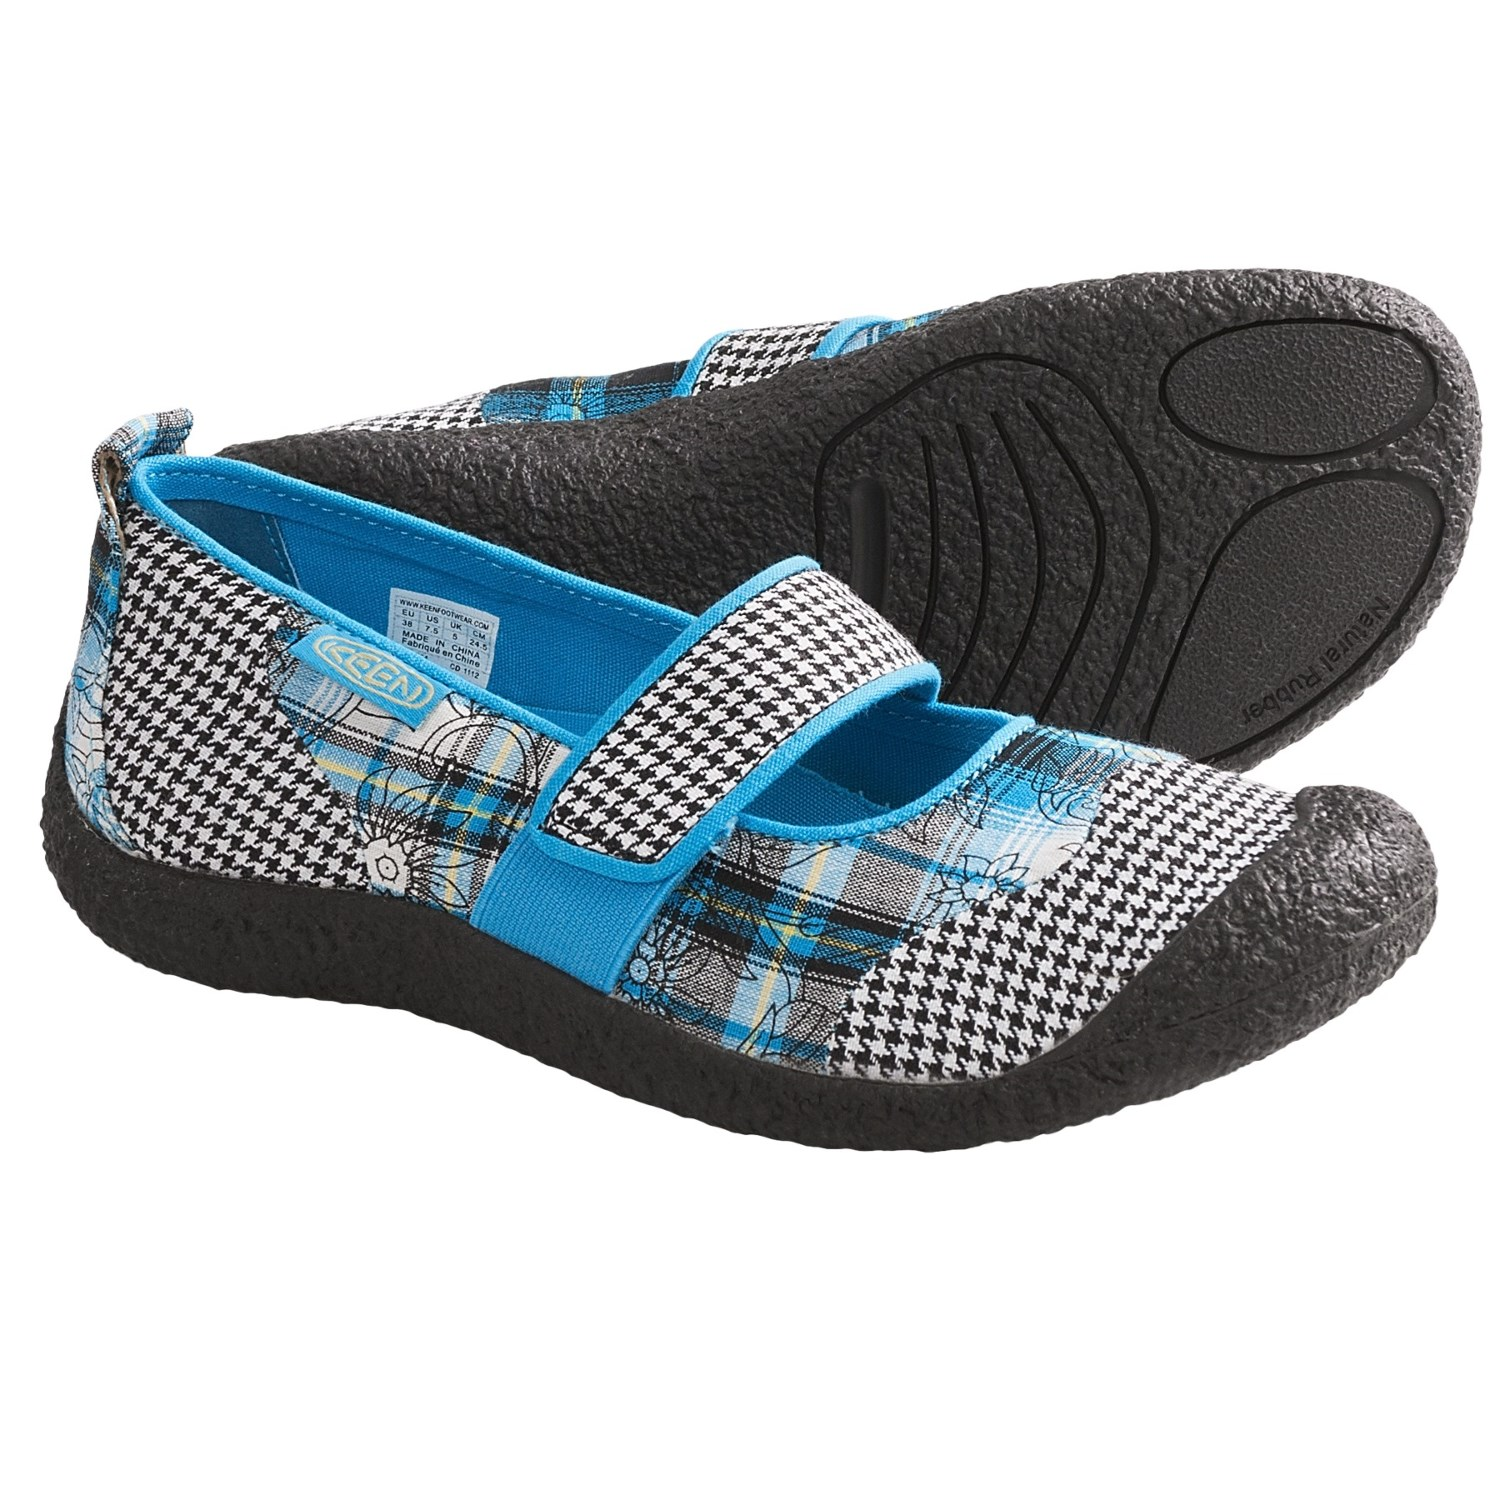 Keen Harvest Mary Jane Shoes (For Women) in Plaid